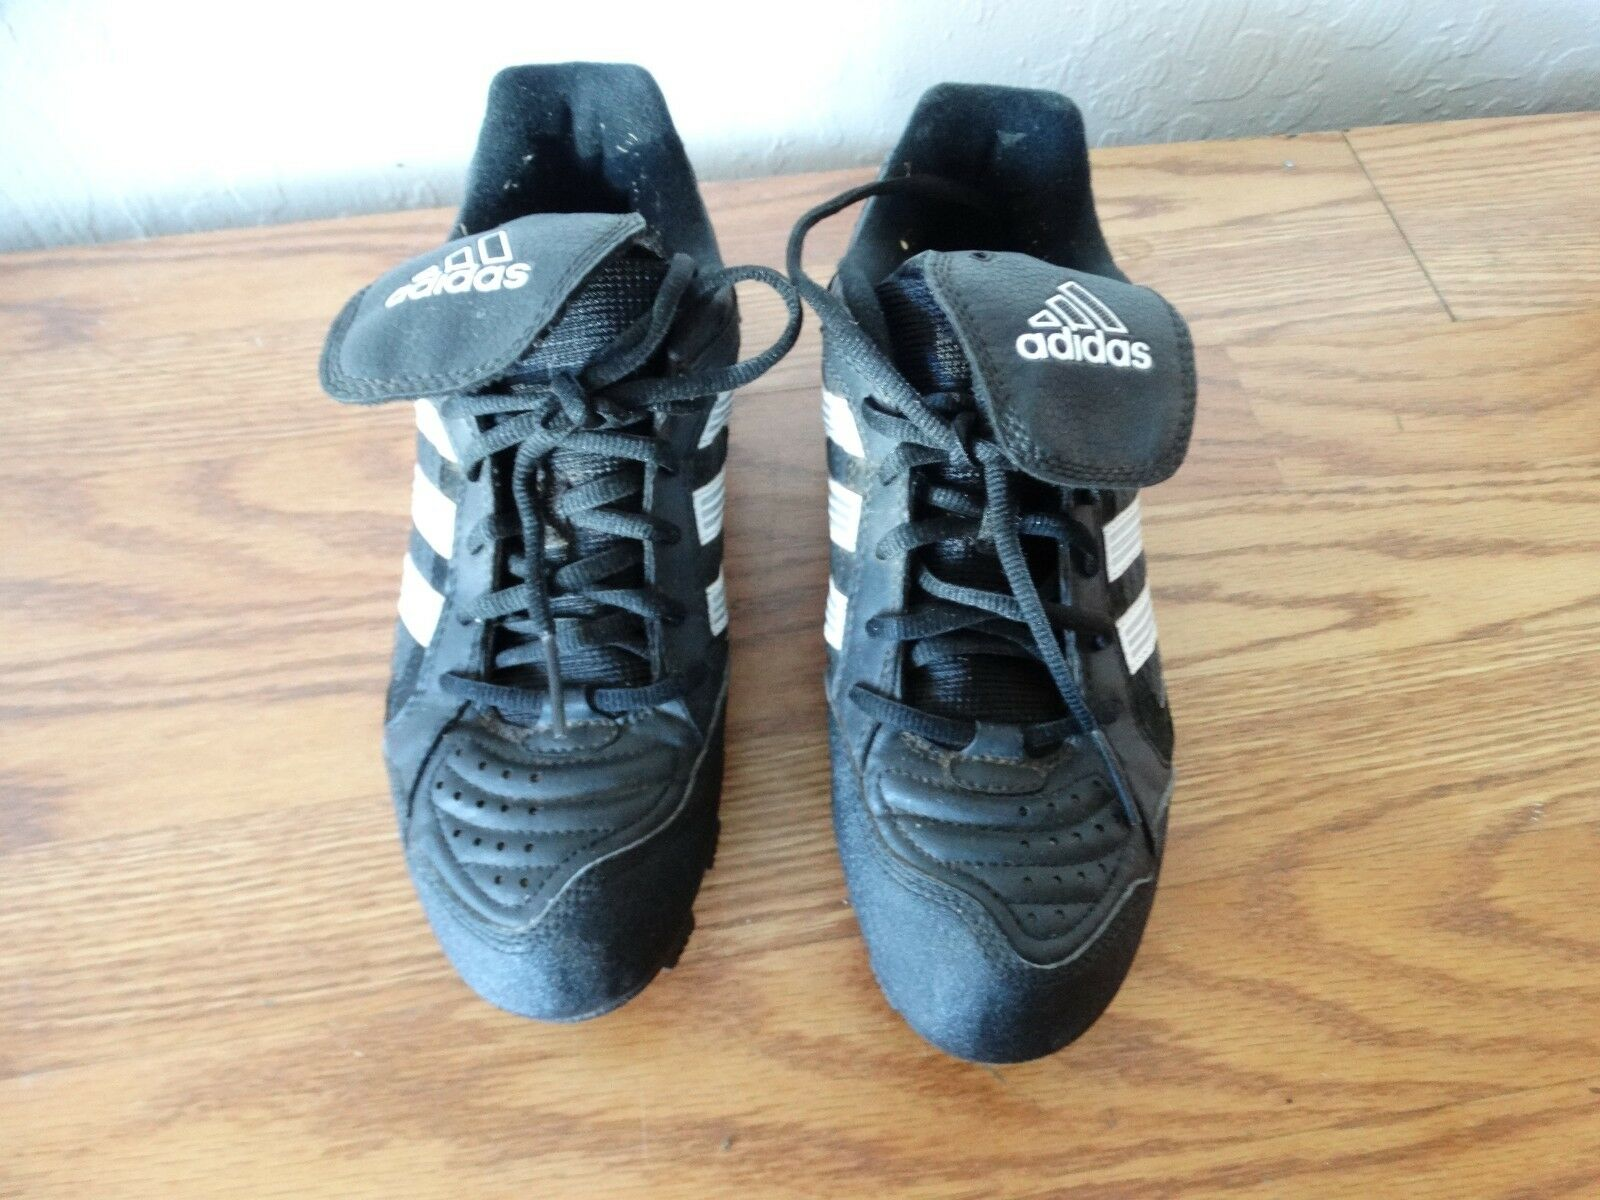 NWT Adidas Men's Excelsior Black Trainer Baseball Athletic Shoes Cleats Black Excelsior 7.5 eae16f